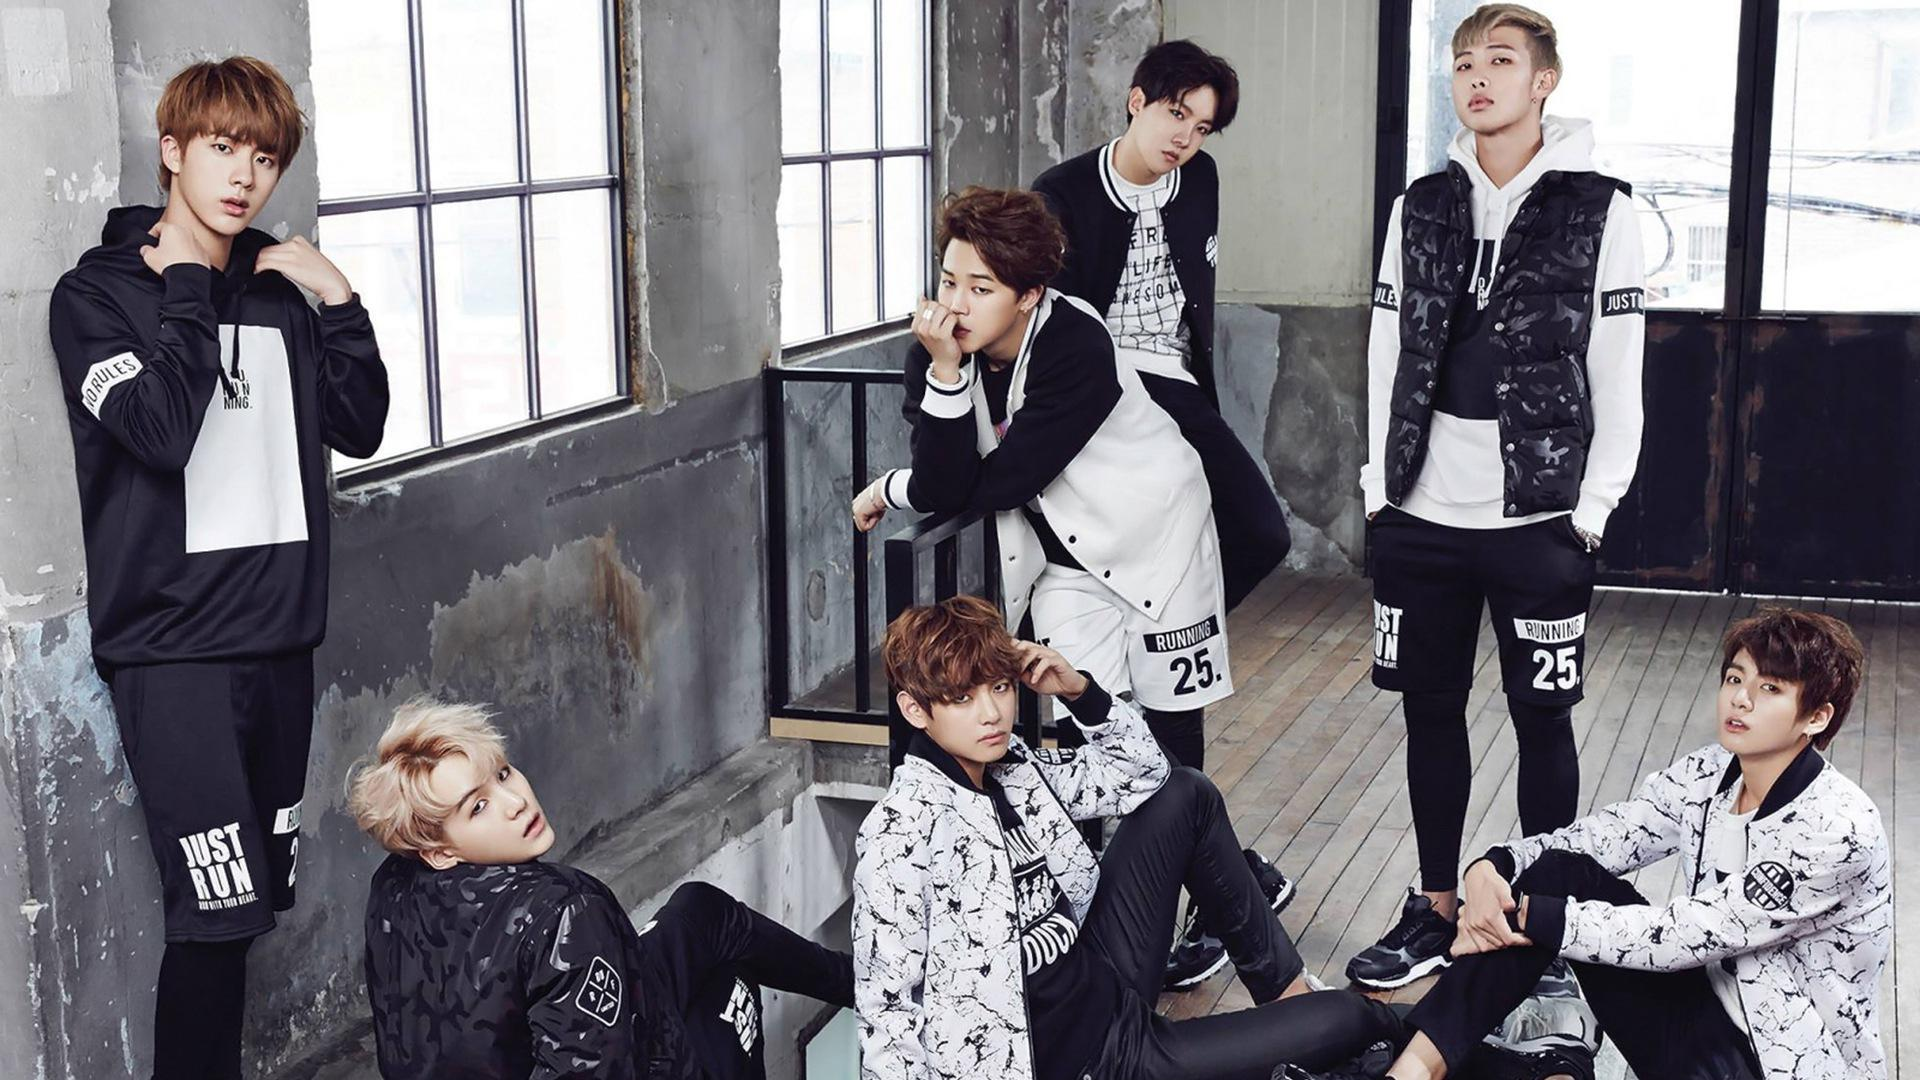 Bts Members Desktop Wallpapers Top Free Bts Members Desktop Backgrounds Wallpaperaccess